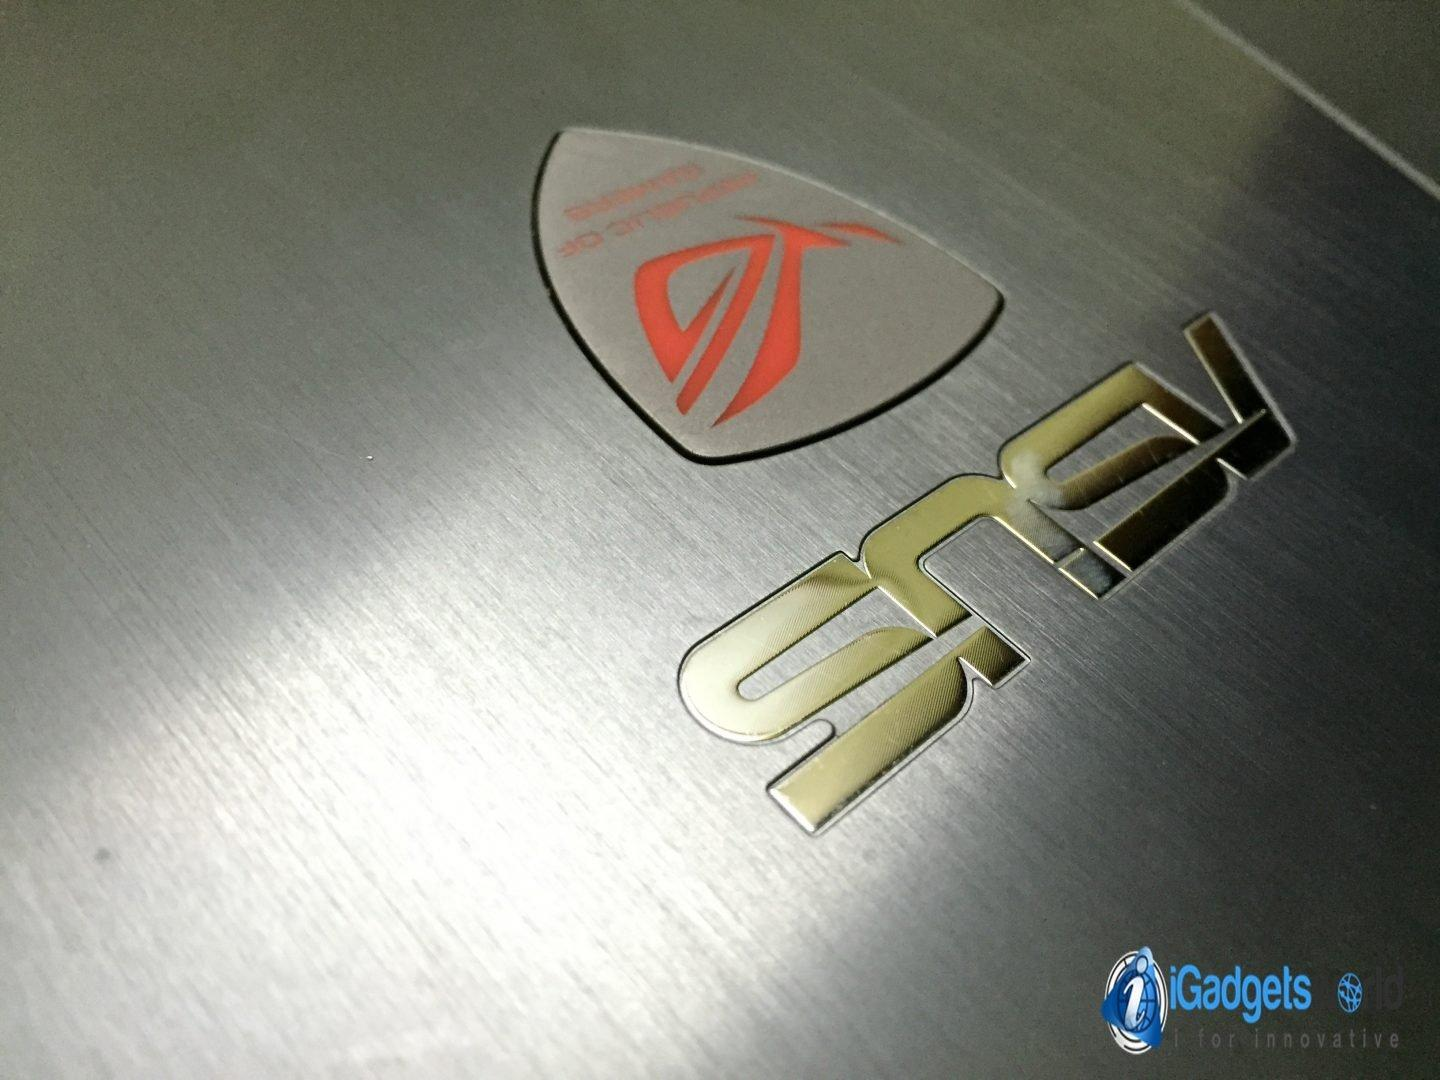 Asus ROG G751J Review: A Slightly Overpriced Ultra High-End Gaming Laptop - 10